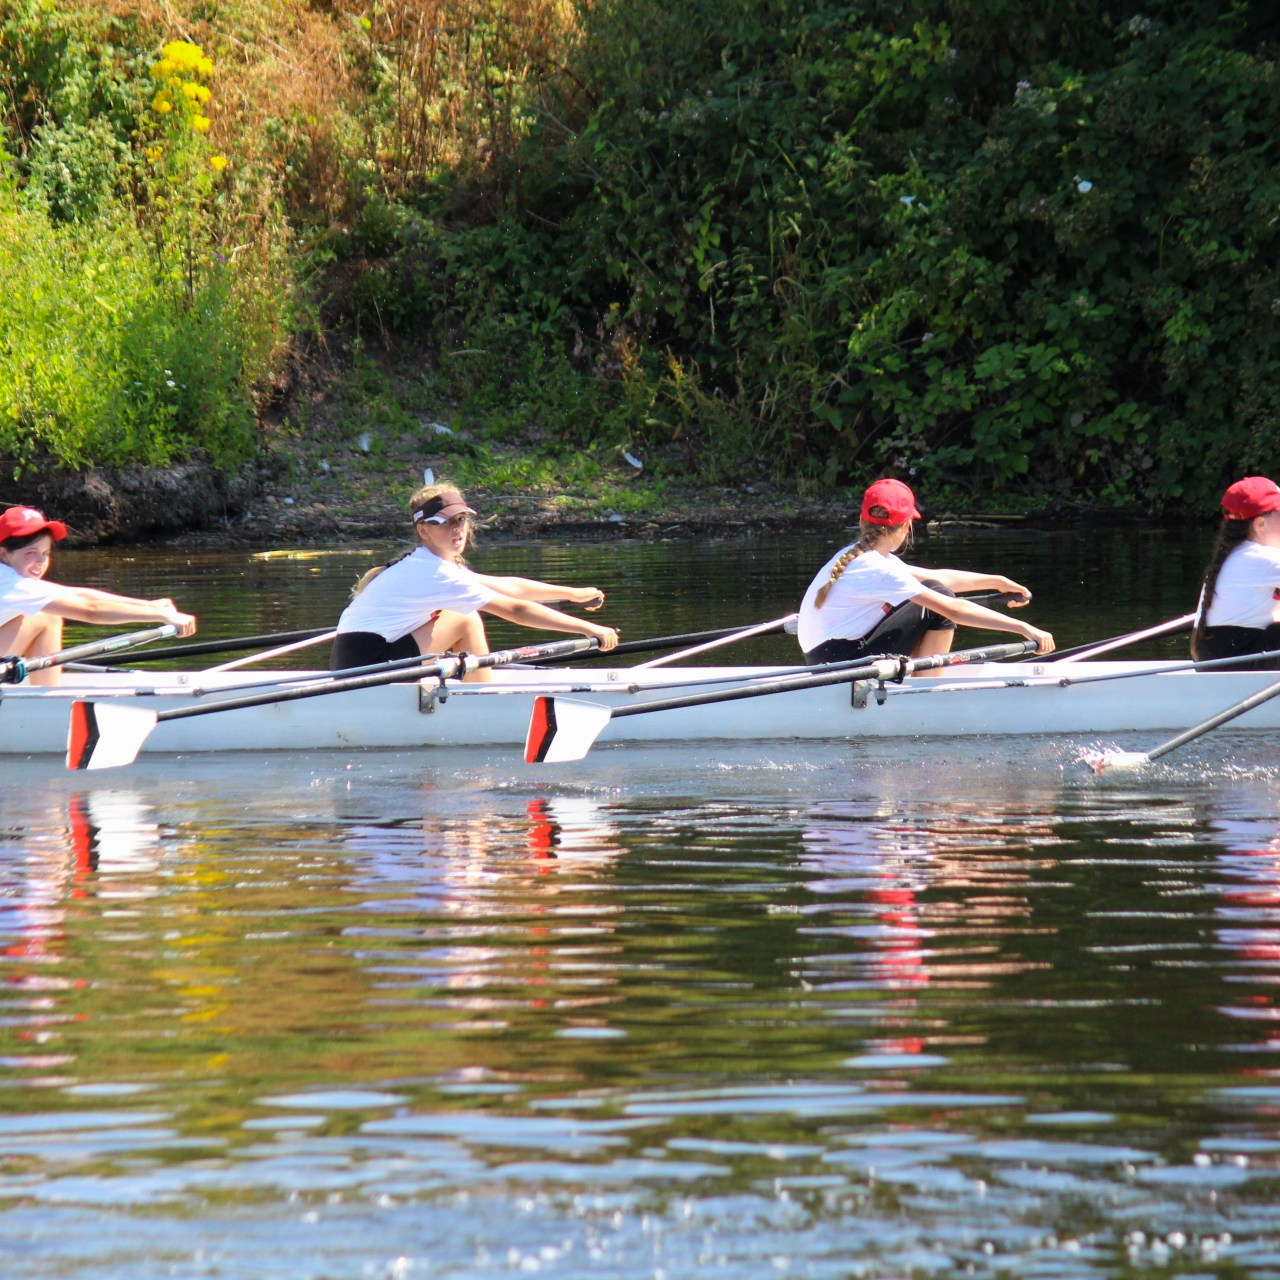 https://i0.wp.com/burtonleanderrowingclub.co.uk/wp-content/uploads/2019/01/regatta-2018.3.jpg?resize=1280%2C1280&ssl=1